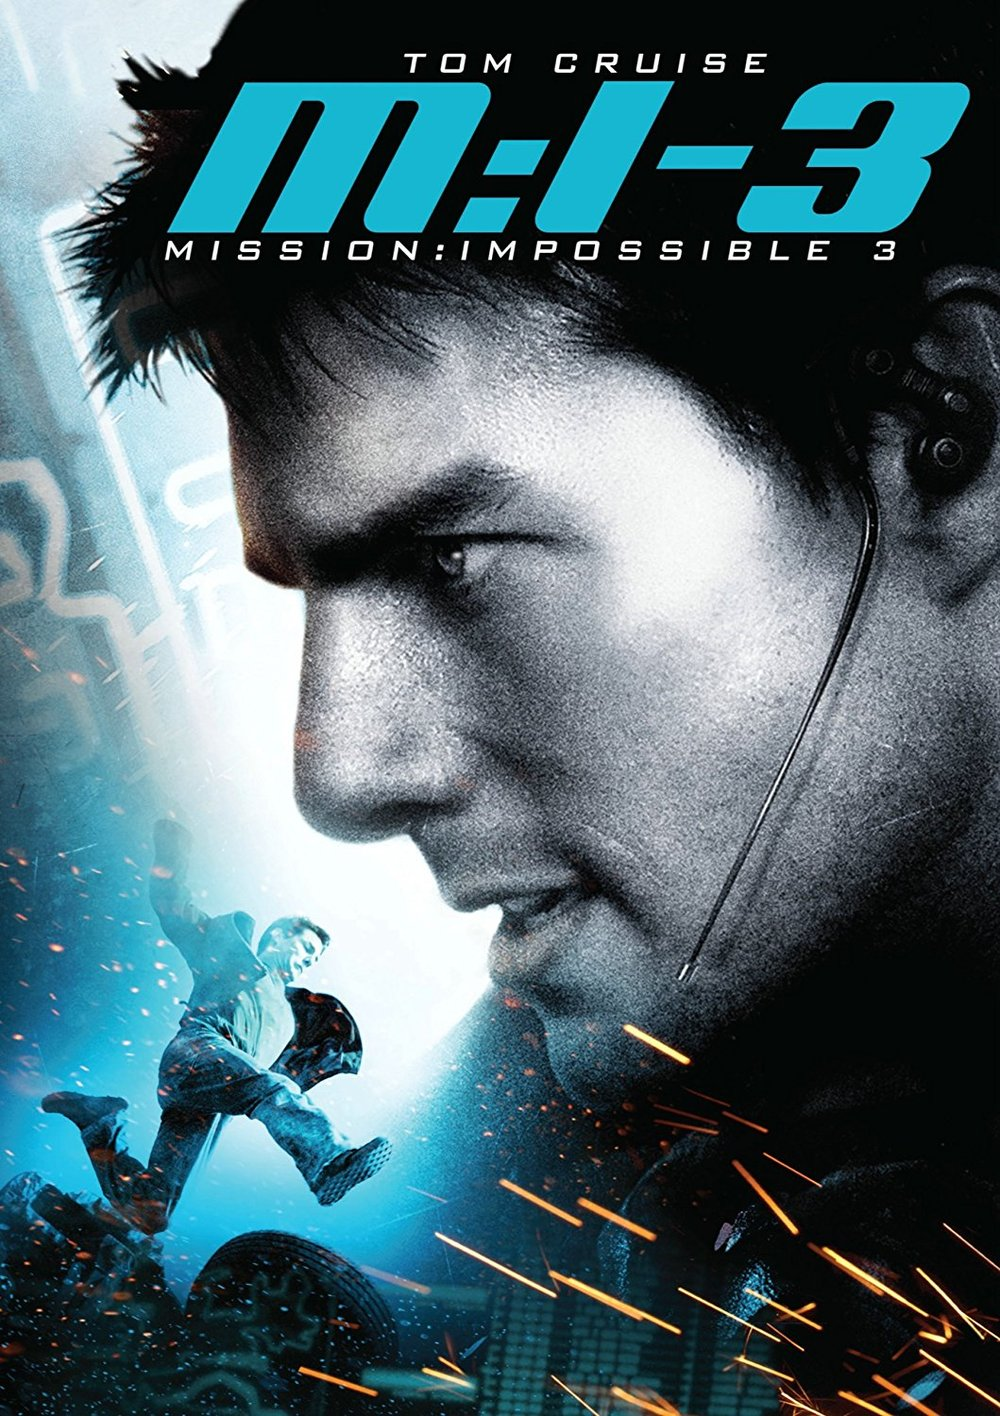 Mission: Impossible (2006) - Directed by: J.J. AbramsStarring: Tom Cruise, Phillip Seymore Hoffman, Michelle Monaghan, Ving Rhames, Billy Crudup, Laurence Fishburne, Kerri Russell, Maggie Q, Simon Pegg, Jonathan Rhys MeyersRated: PG13Running Time: 2h 6mTMM Score: 4 stars out of 5STRENGTHS: Set Pieces, VillainWEAKNESSES: A Little Cheesy